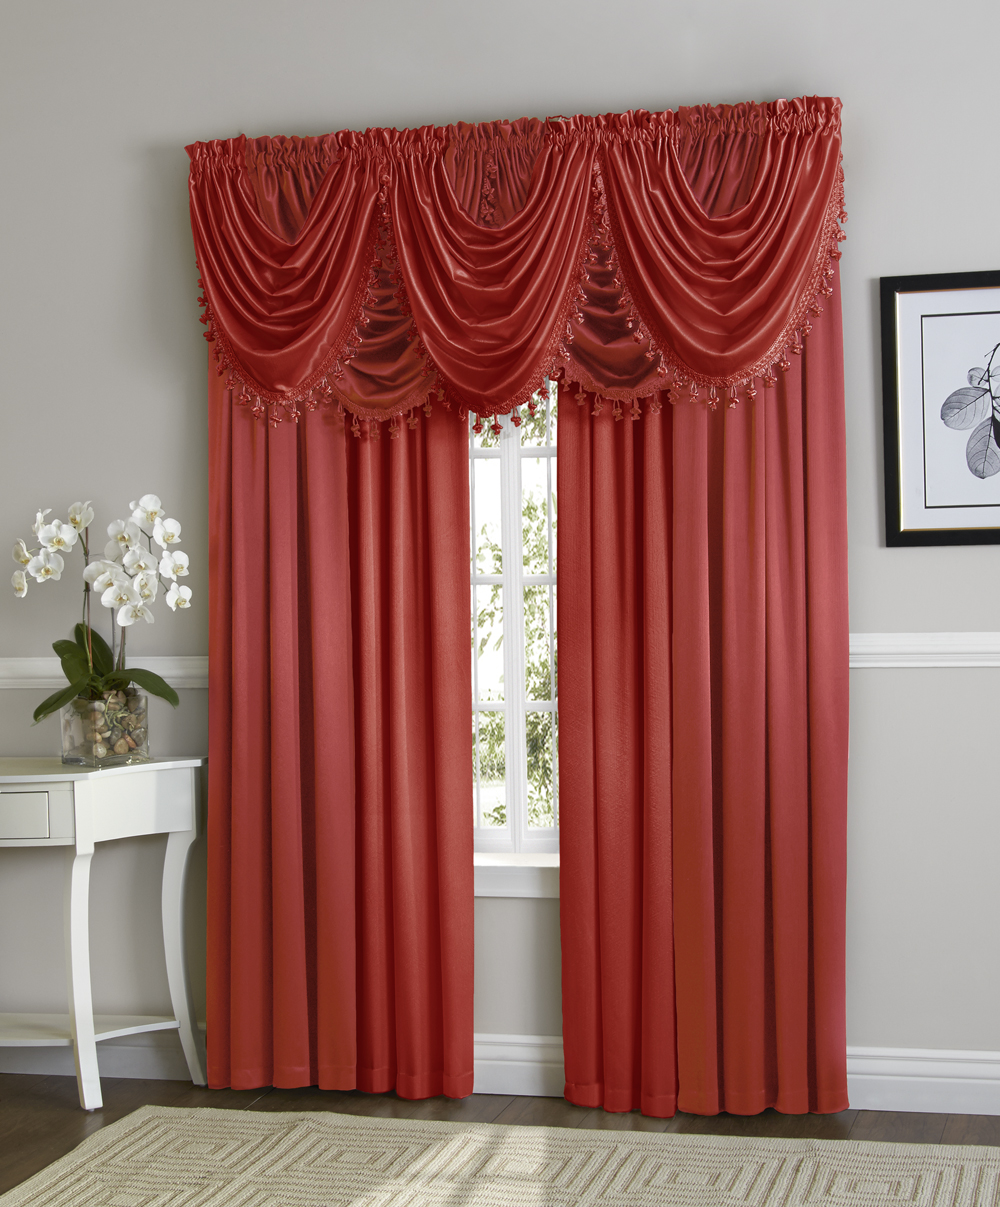 Hyatt Window Curtain & Fringed Valance Complete 9 Piece Window Treatment Set Berry by